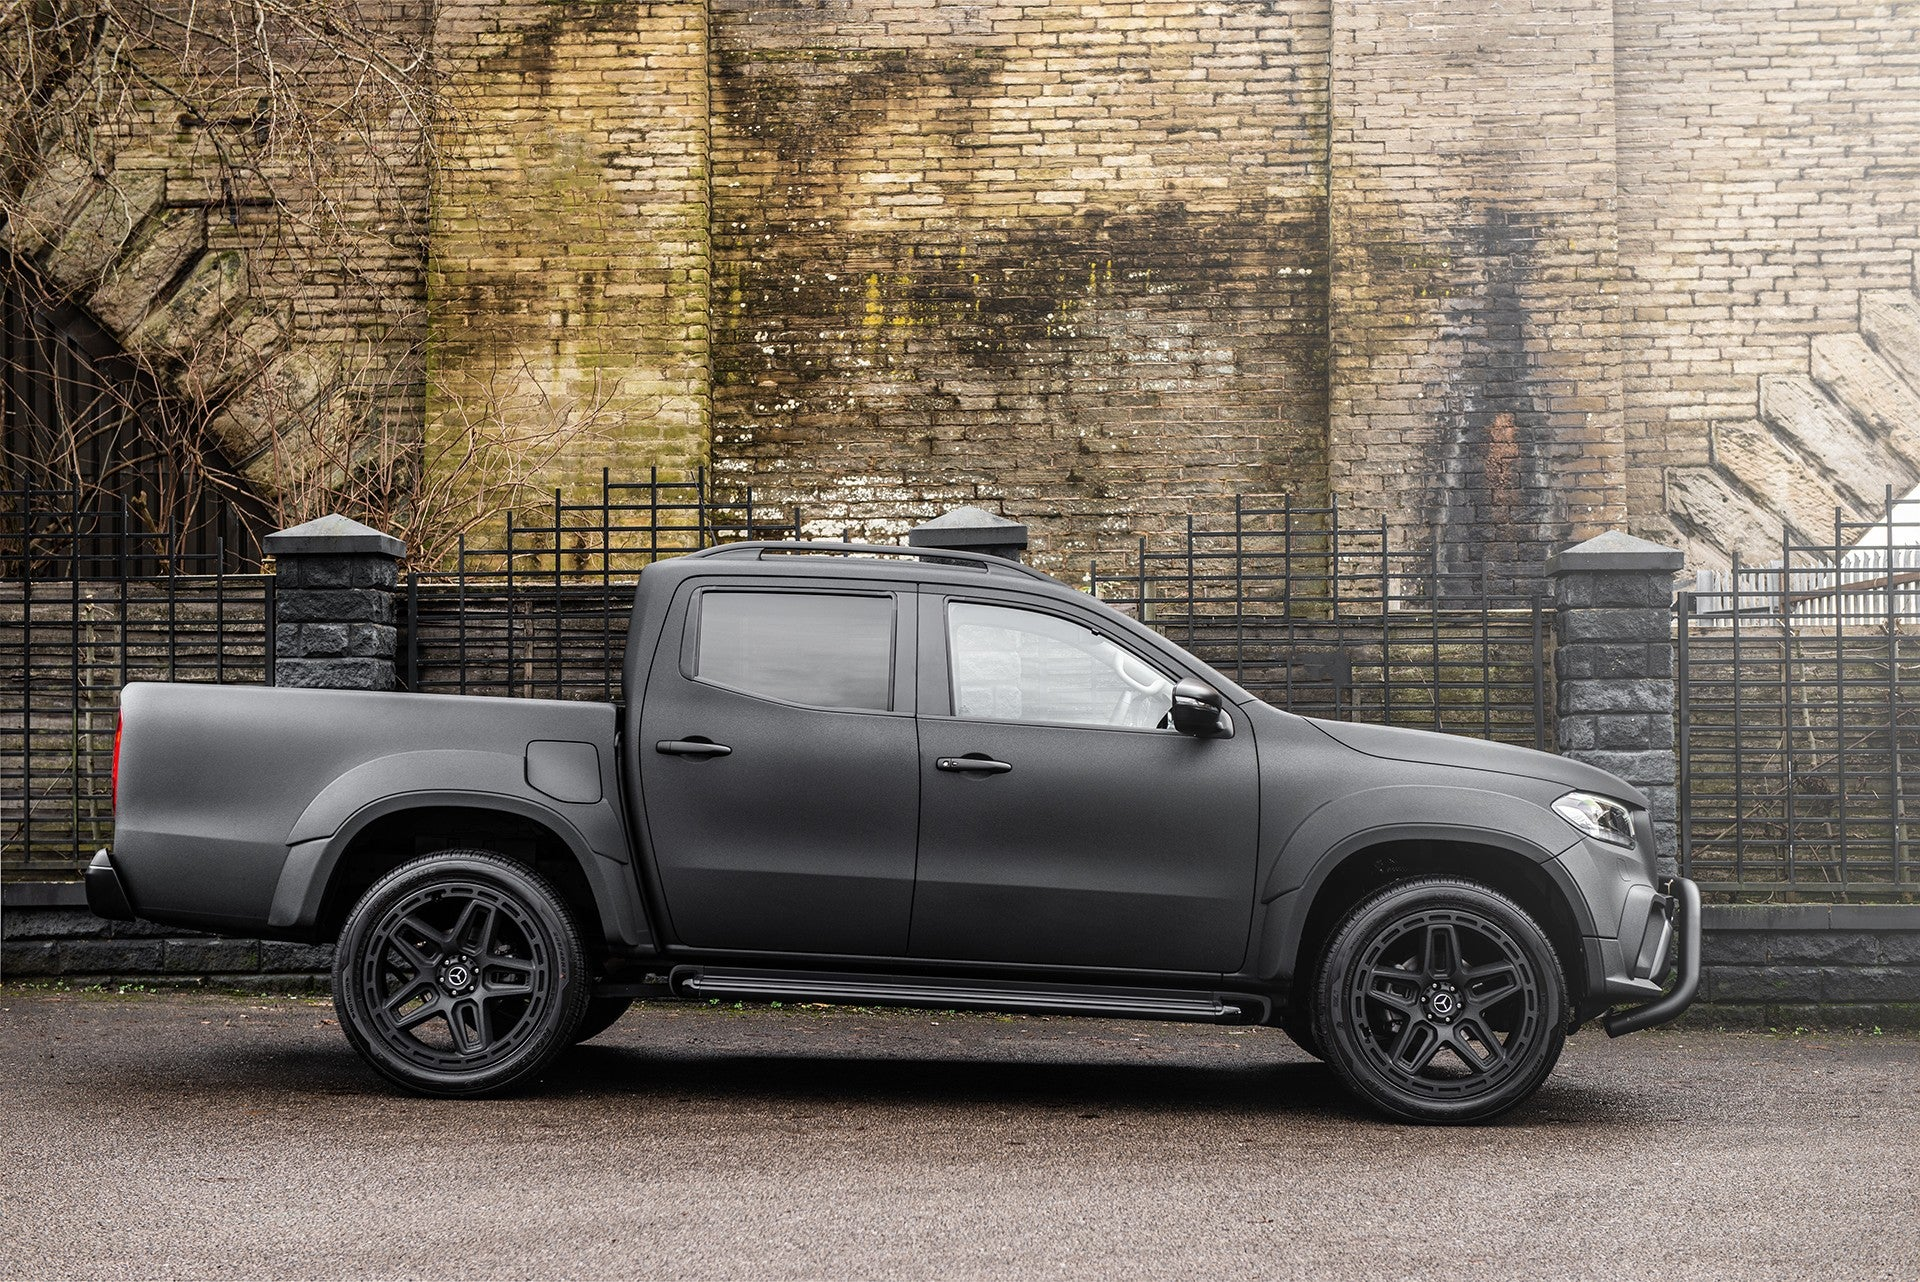 PROJECT KAHN 'ARMY CHIC' MERCEDES-BENZ X CLASS 02